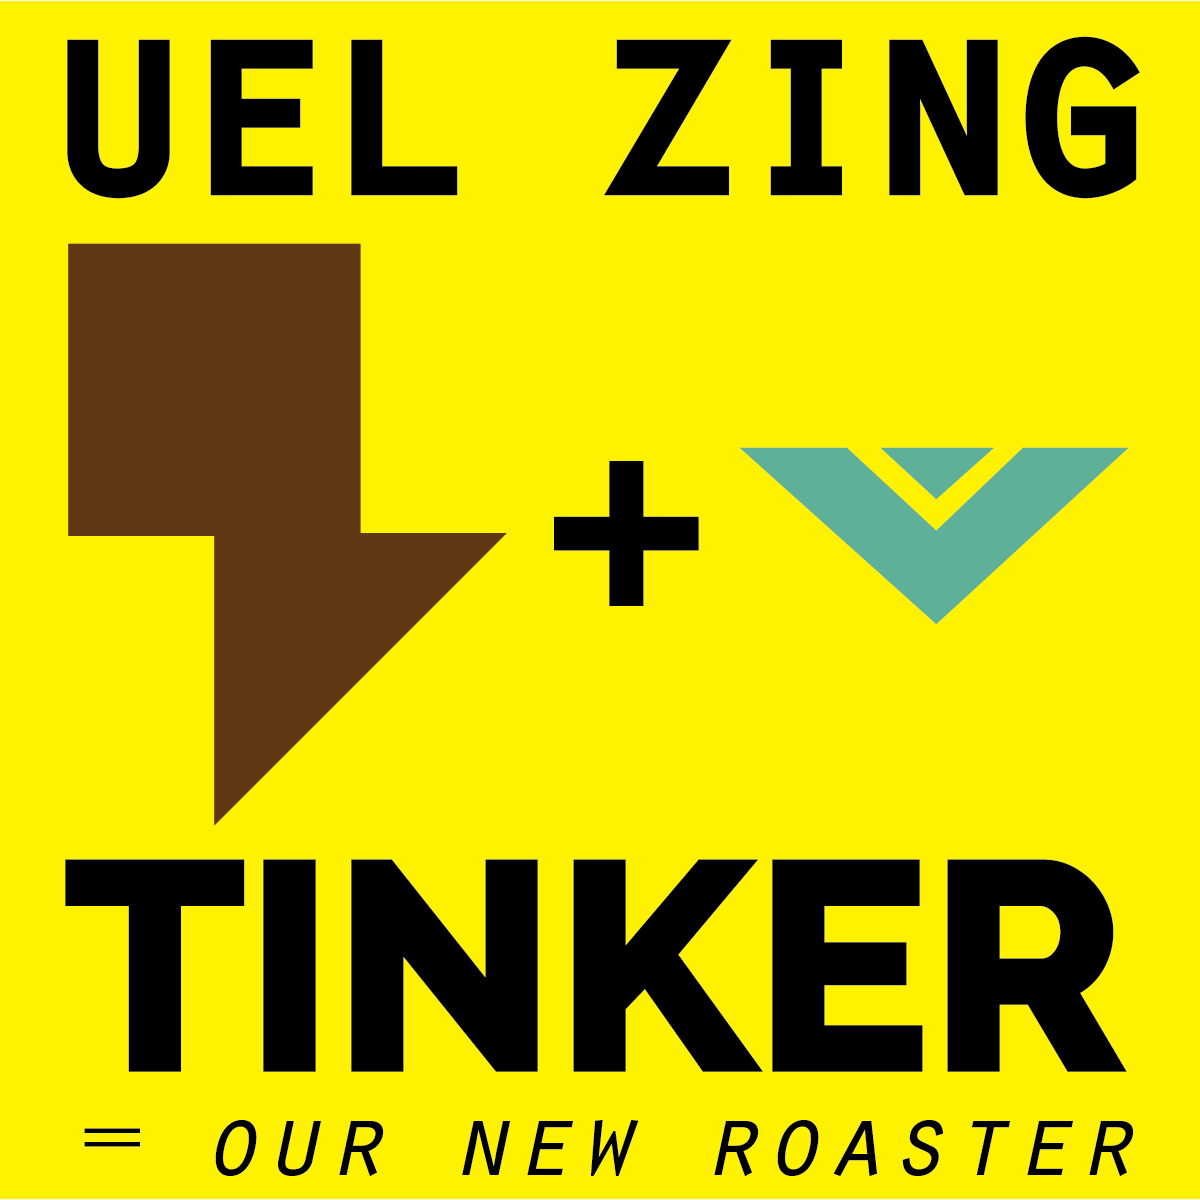 UEL ZING + TINKER = OUR NEW ROASTER